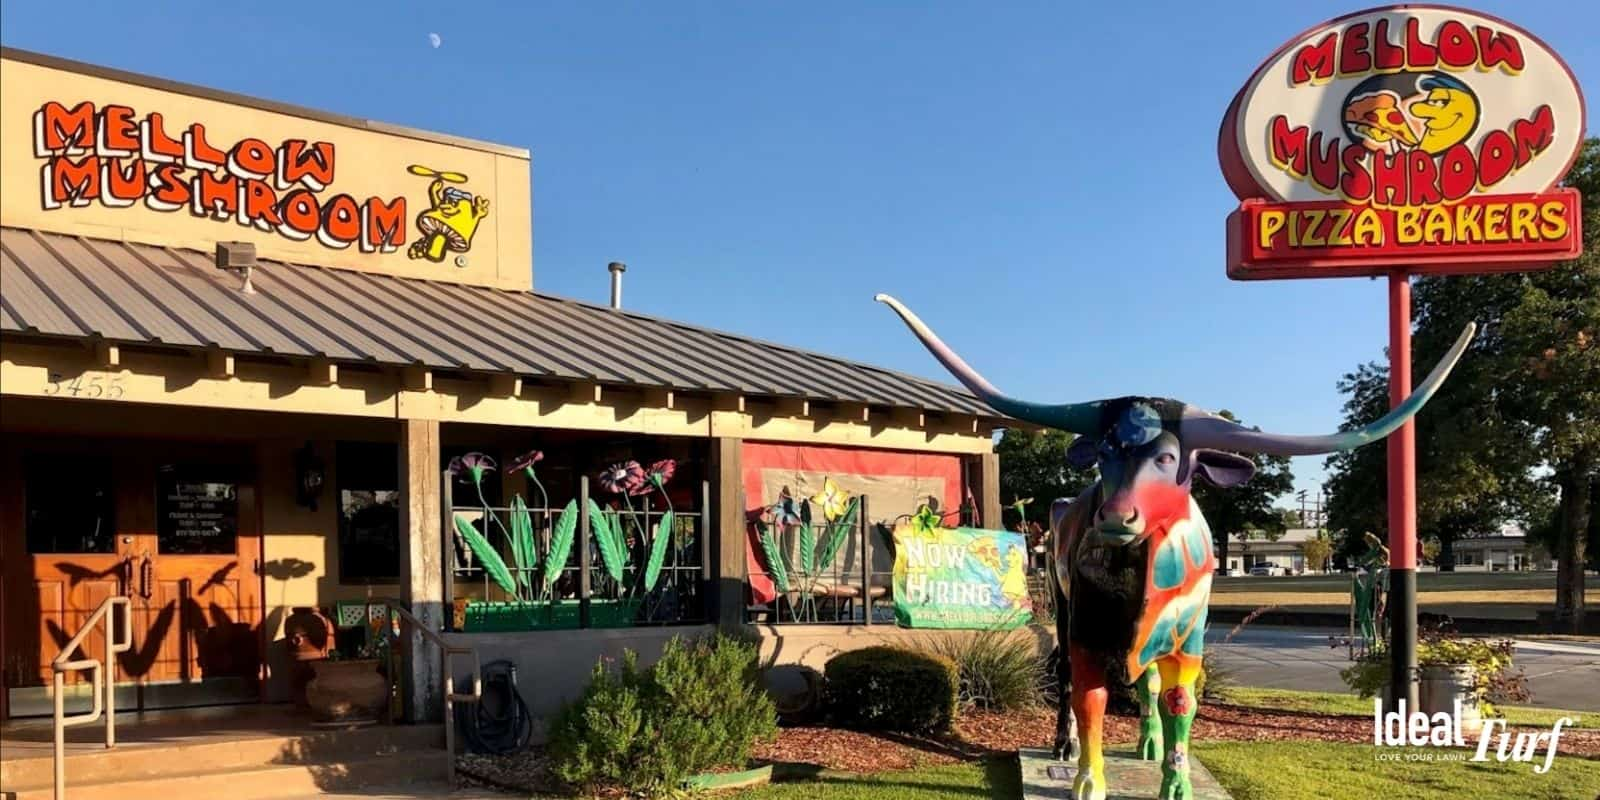 Picture of the front entrance with longhorn outside of the Mellow Mushroom Restaurant in Fort Worth